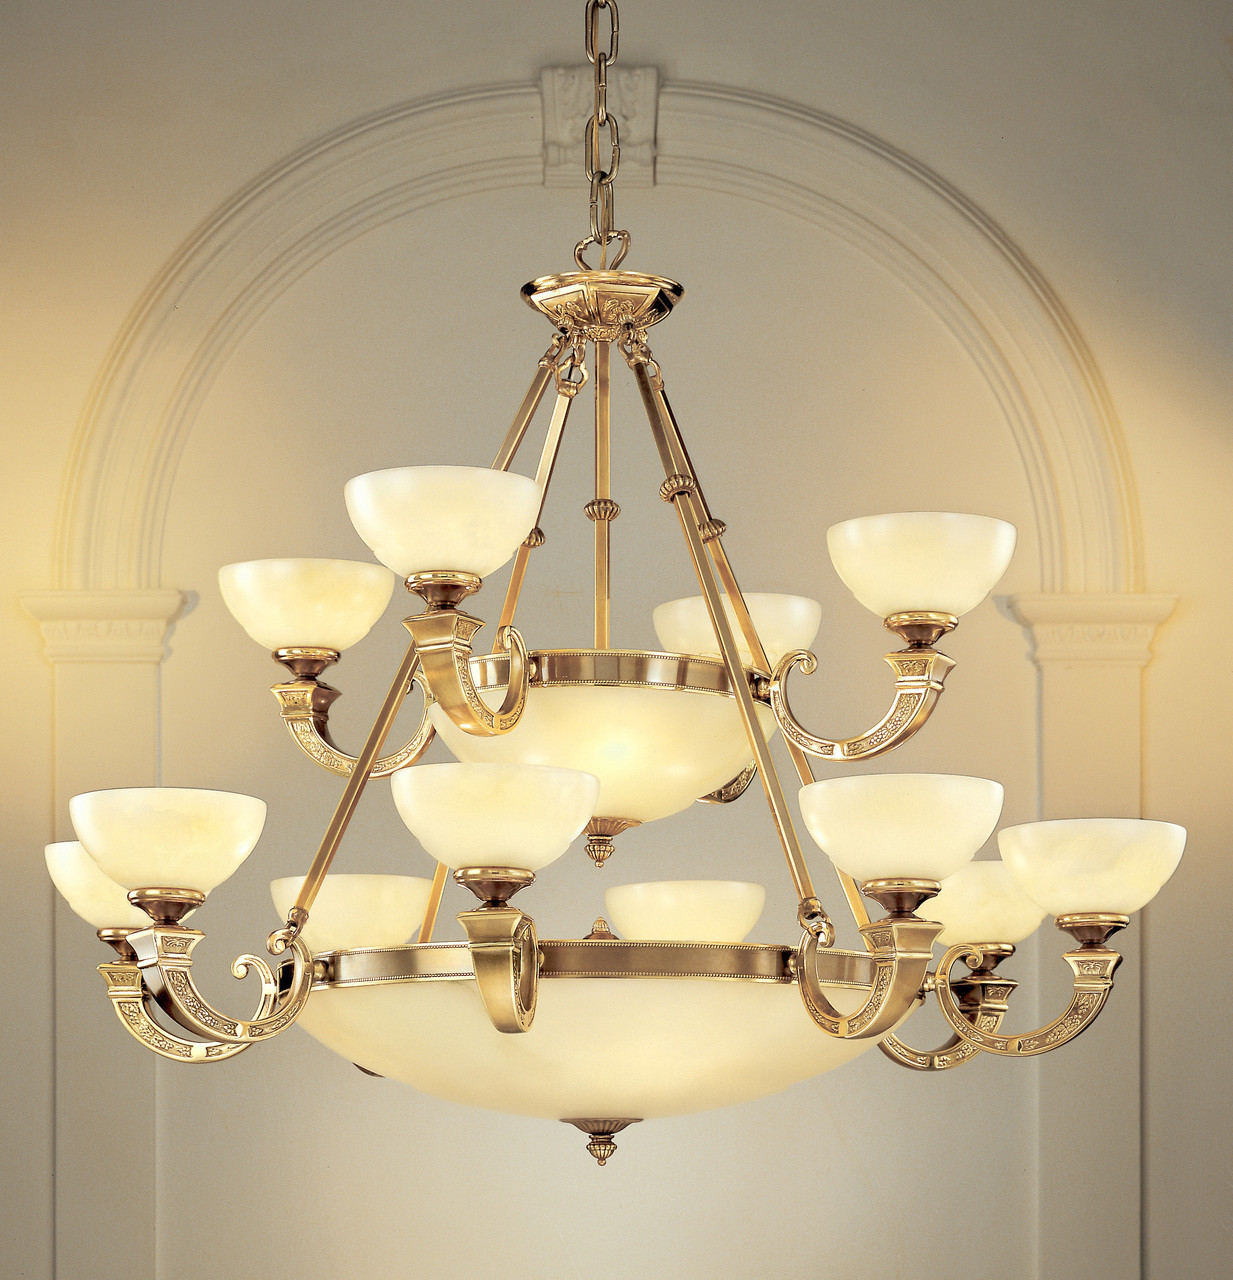 Classic Lighting 5624 ABZ Mallorca Alabaster Chandelier in Antique Bronze  (Imported from Spain) - Classic Lighting 5624 ABZ Mallorca Alabaster Chandelier In Antique